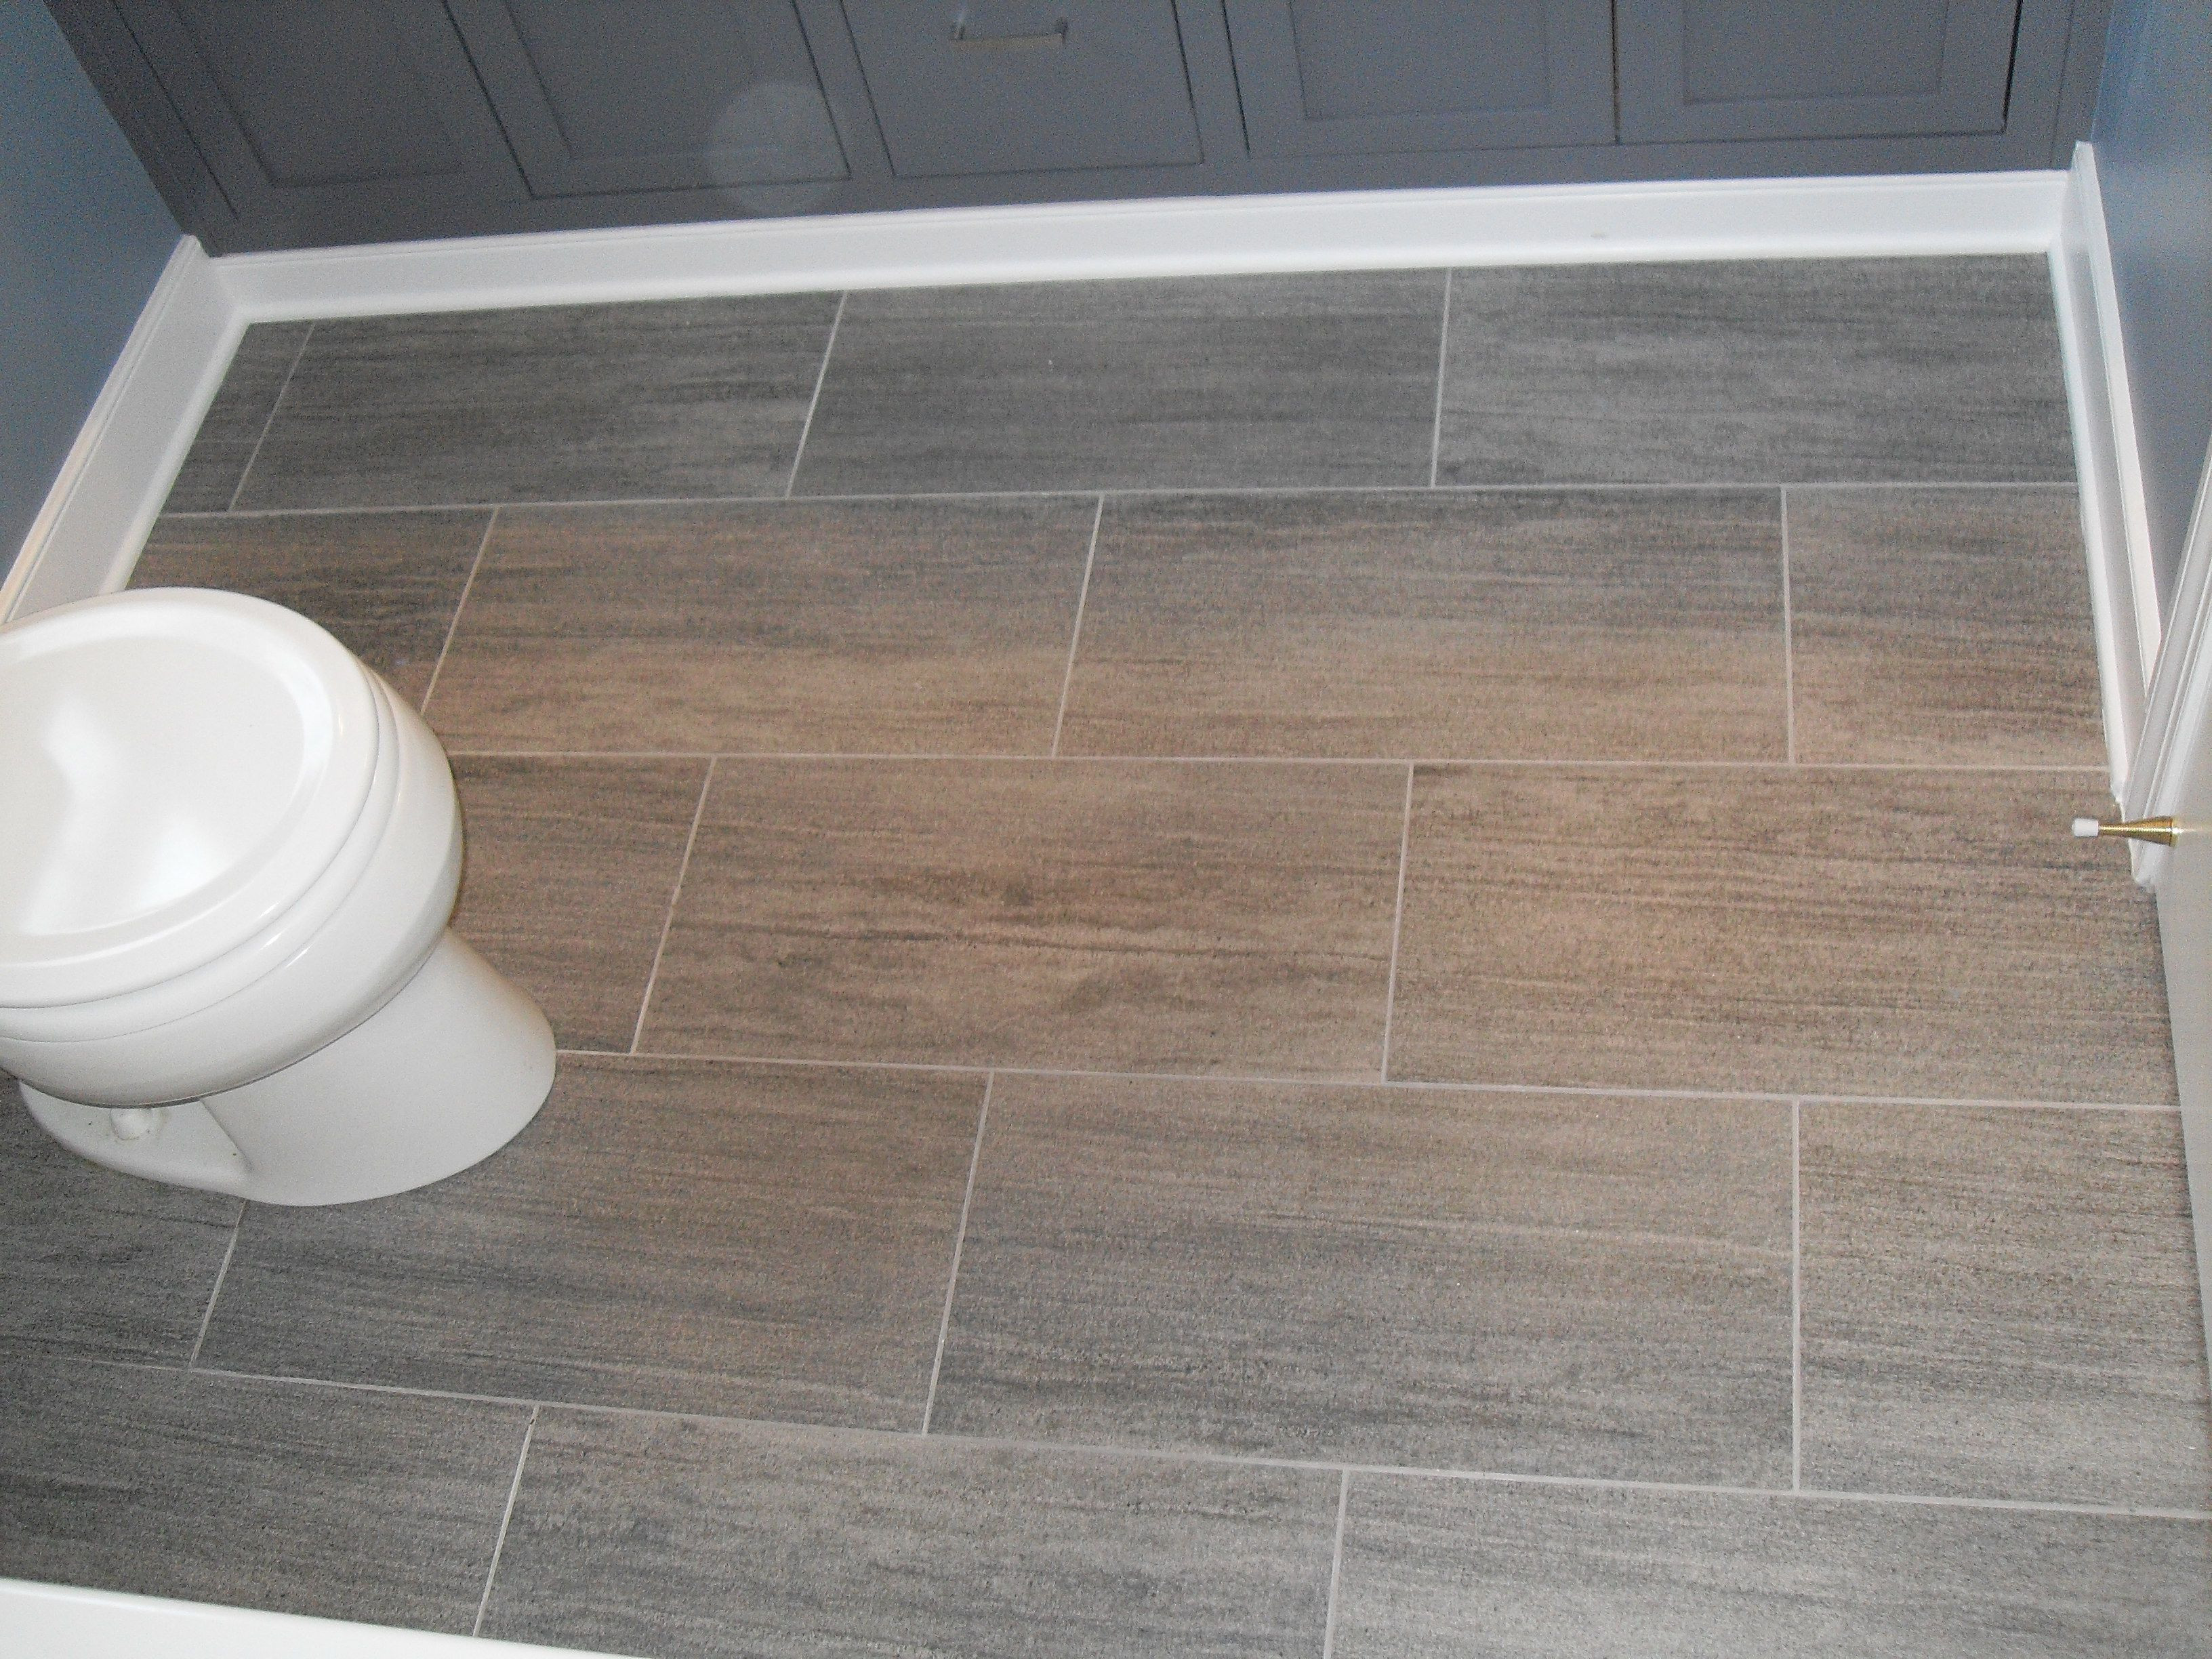 Best ideas about Bathroom Floor Tile Ideas . Save or Pin Bathroom Floor Tile Ideas and Warmer Effect They Can Give Now.